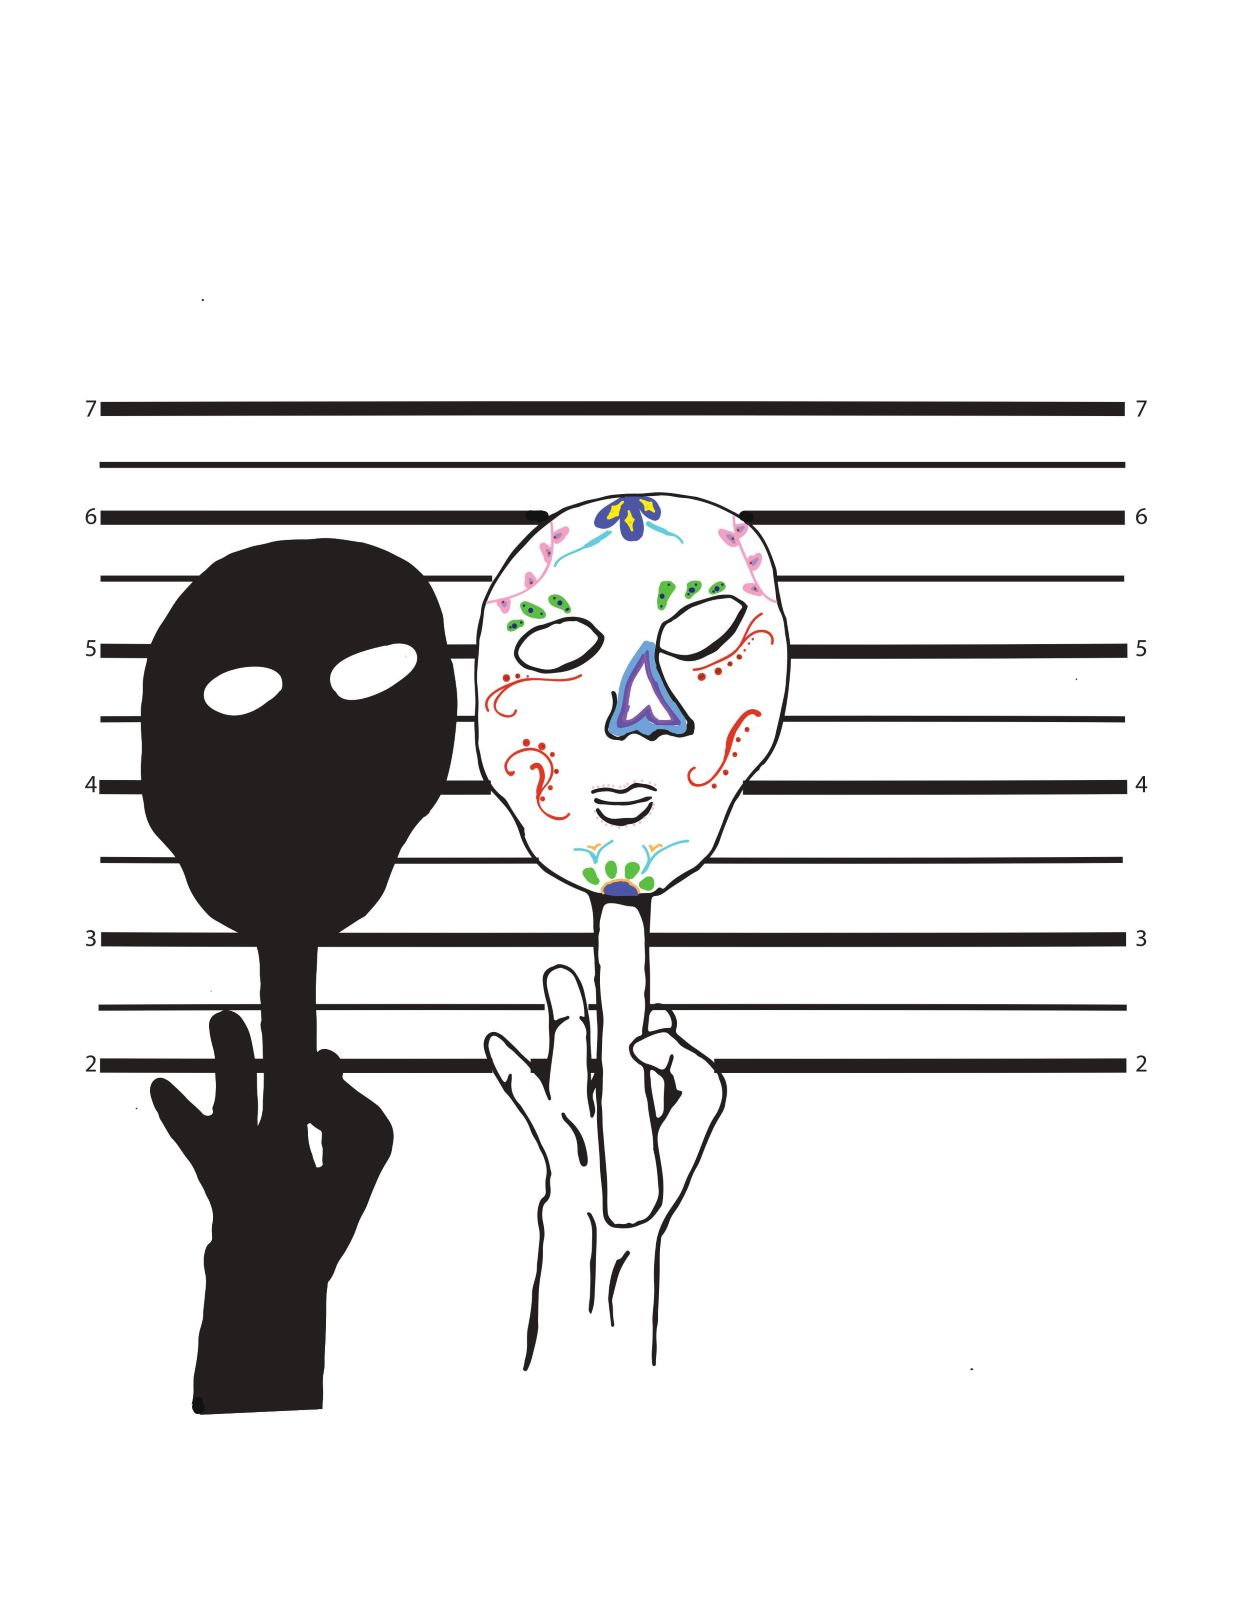 image of hand holding up a mask and a shadow of hand holding mask and line-up wall behind it